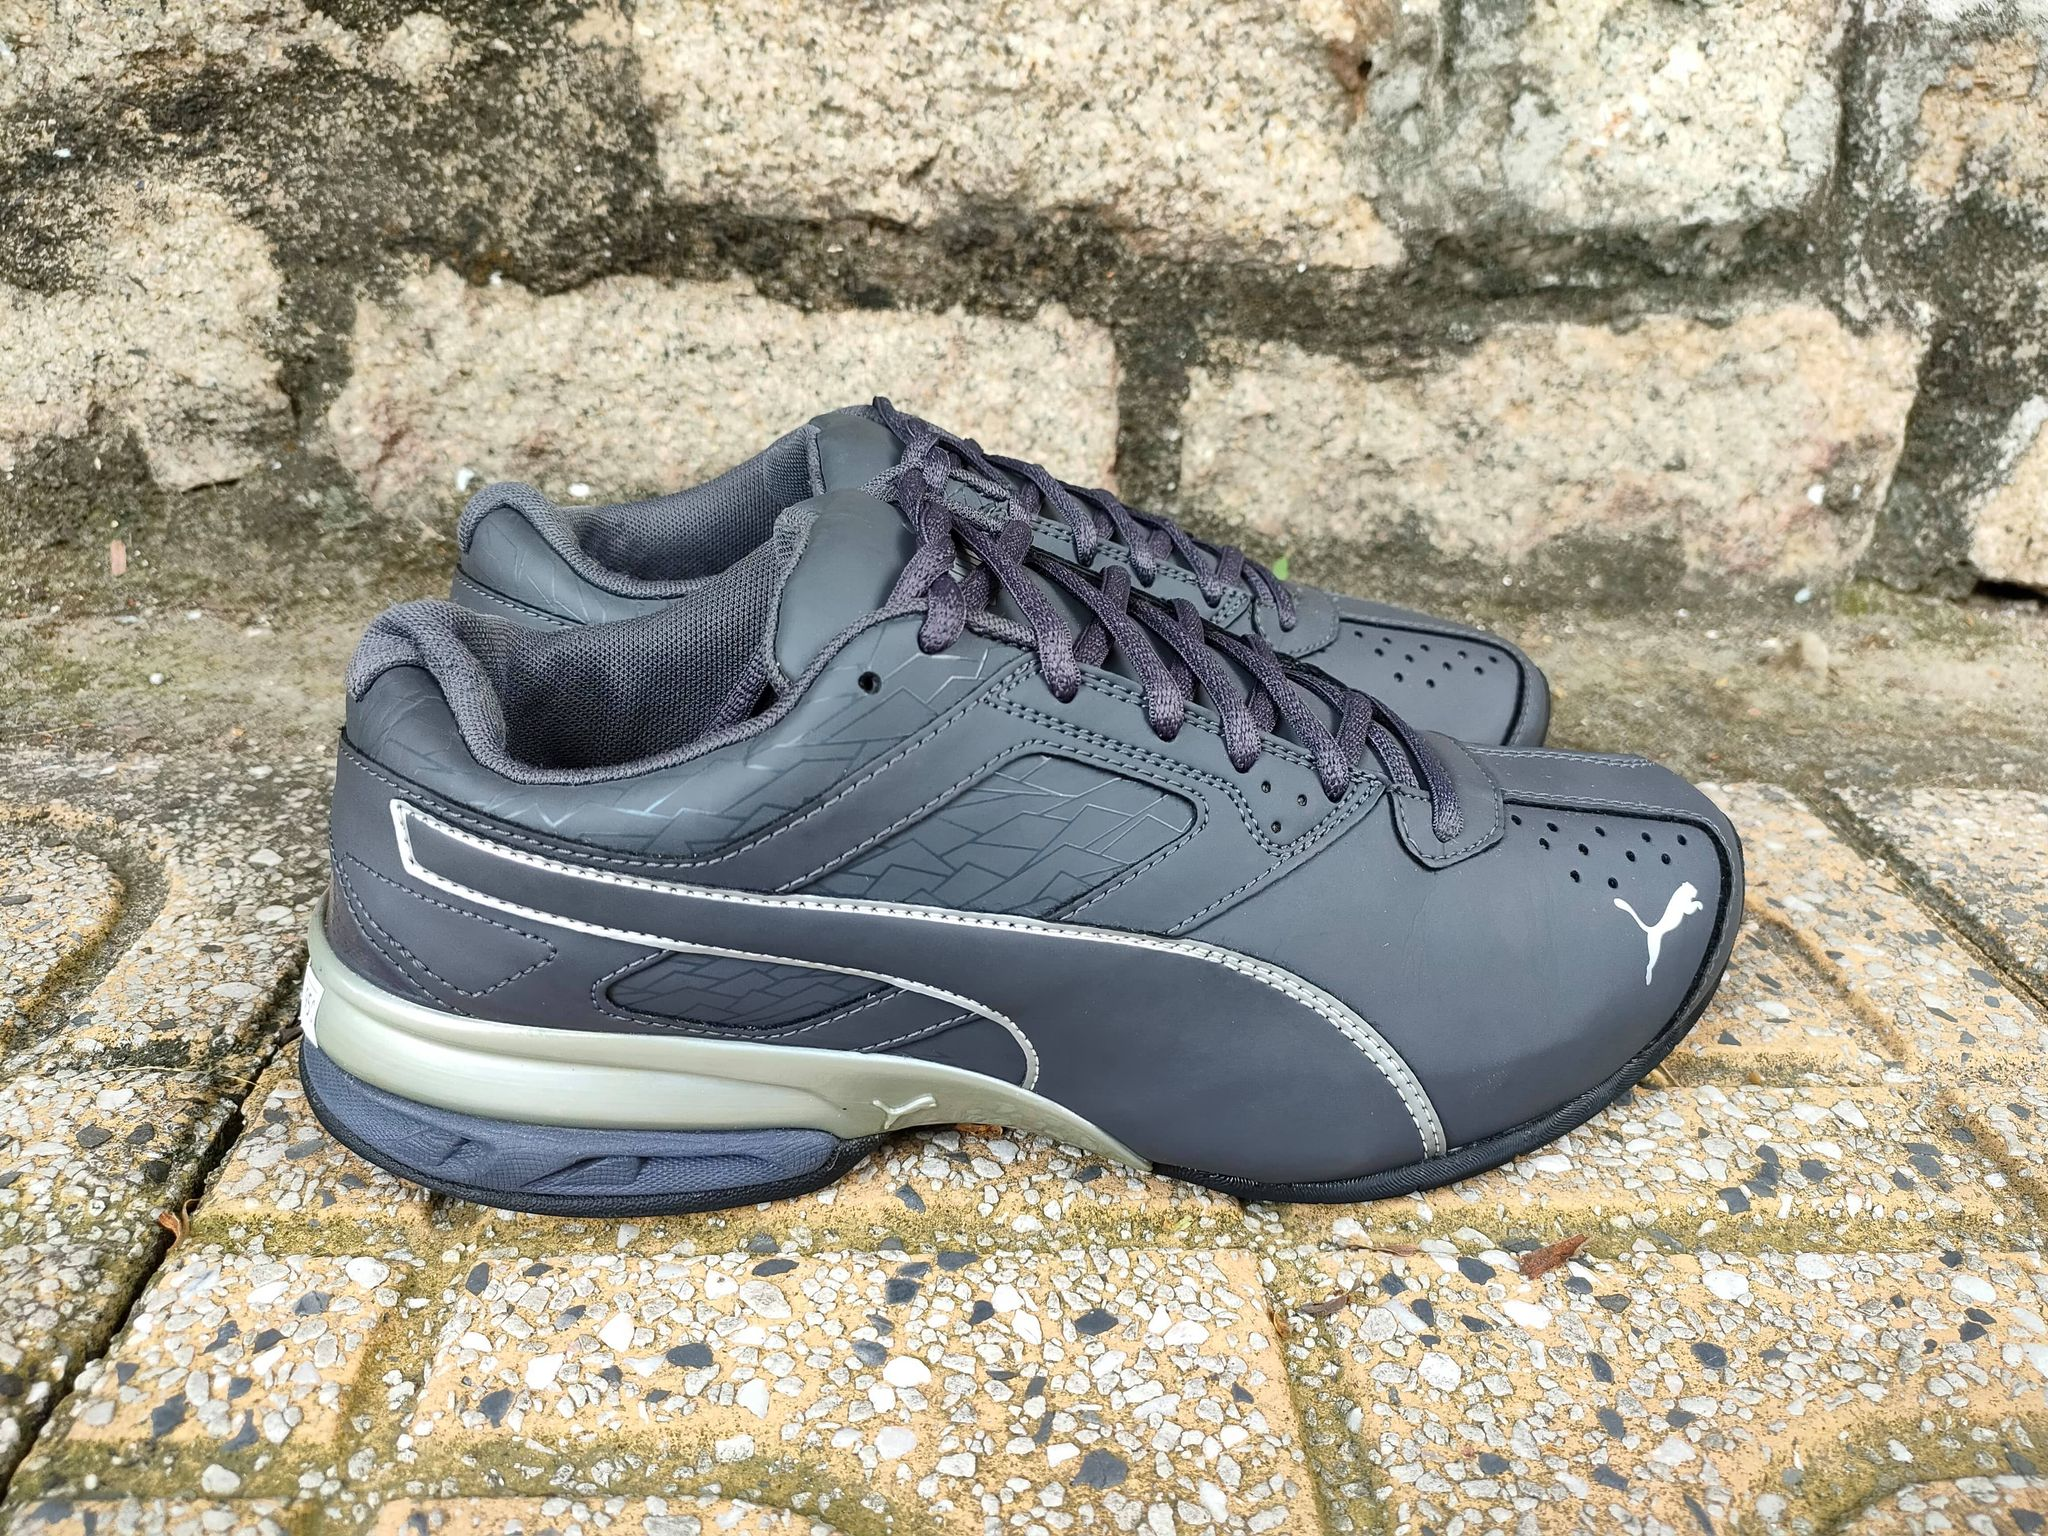 Giày thể thao PUMA Men's Tazon 6 Fracture size 42/ ZL: 0907130133